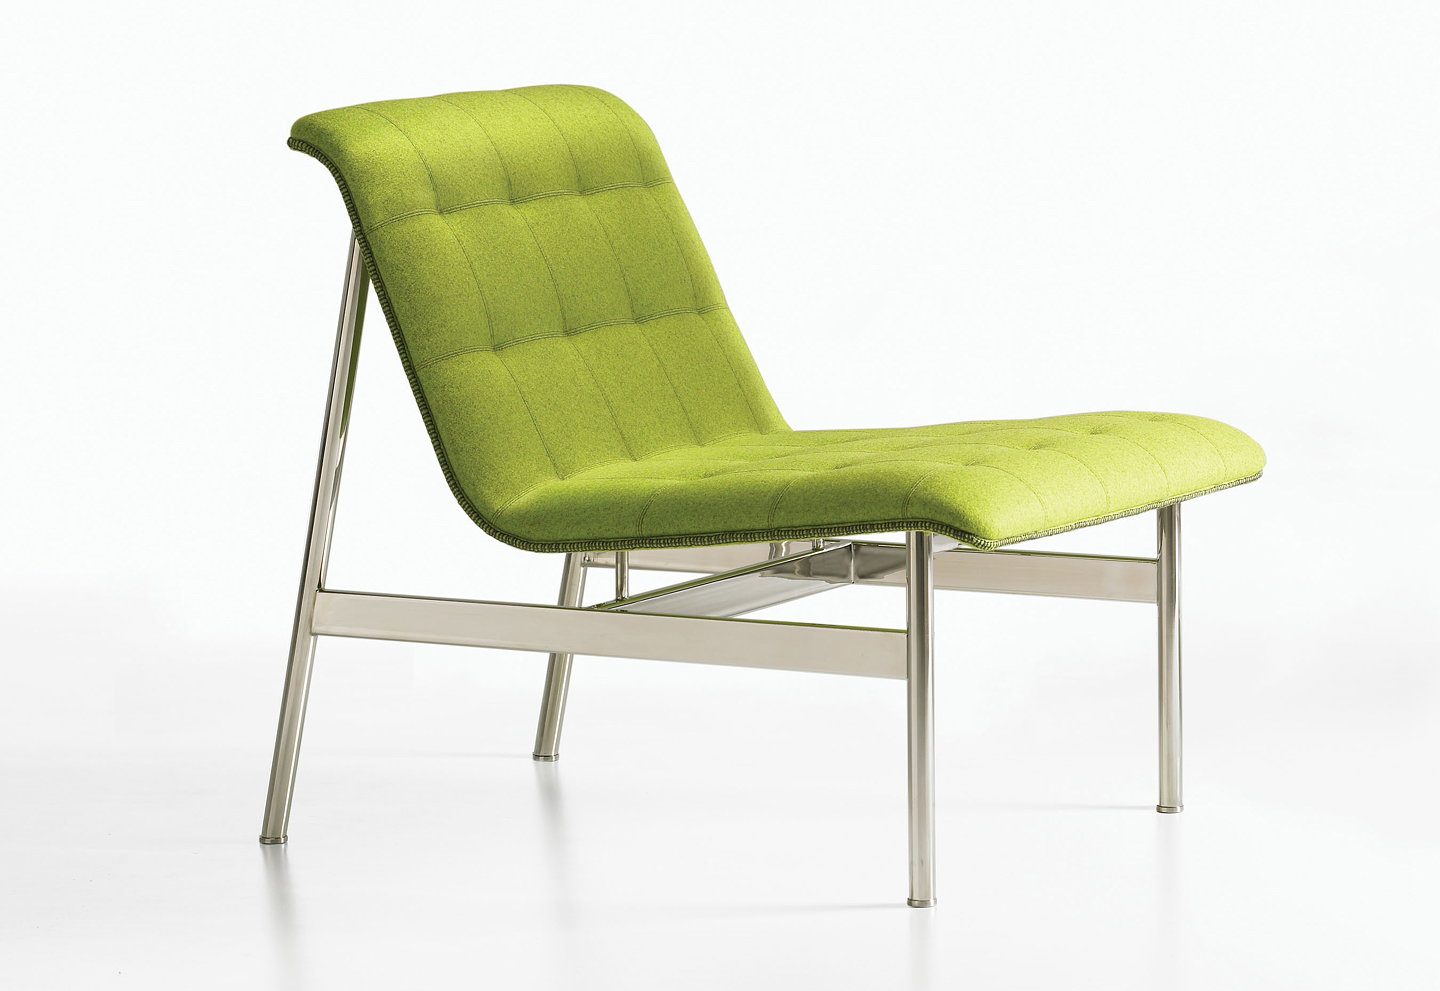 Bernhardt Design To Launch Cp Lounge By Charles Pollock At